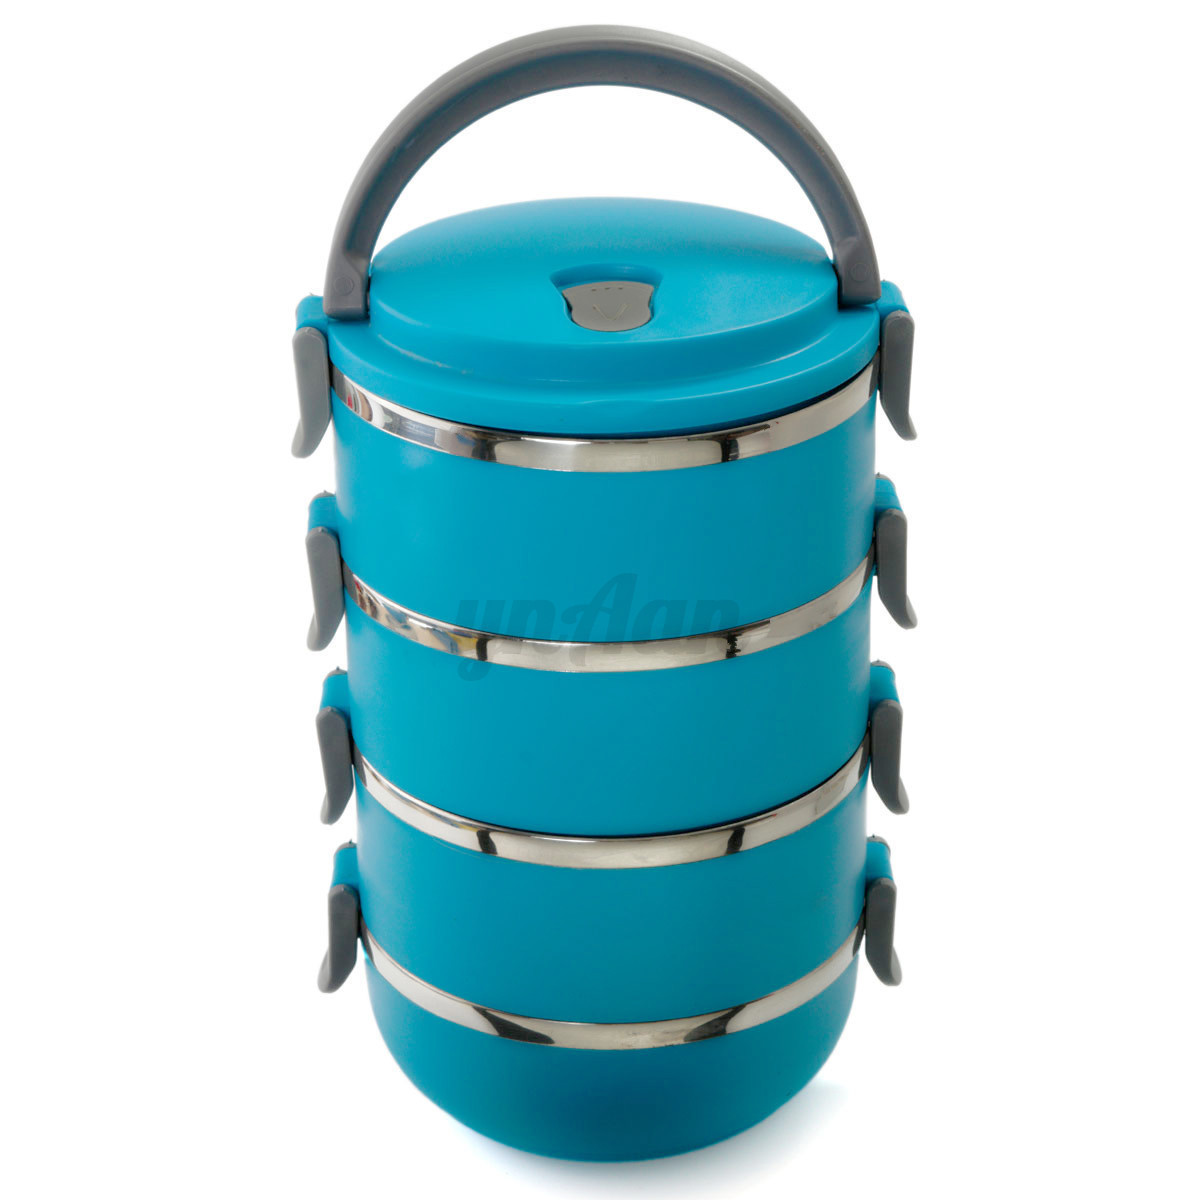 four layer stainless steel insulation thermal lunch box container with handle ebay. Black Bedroom Furniture Sets. Home Design Ideas